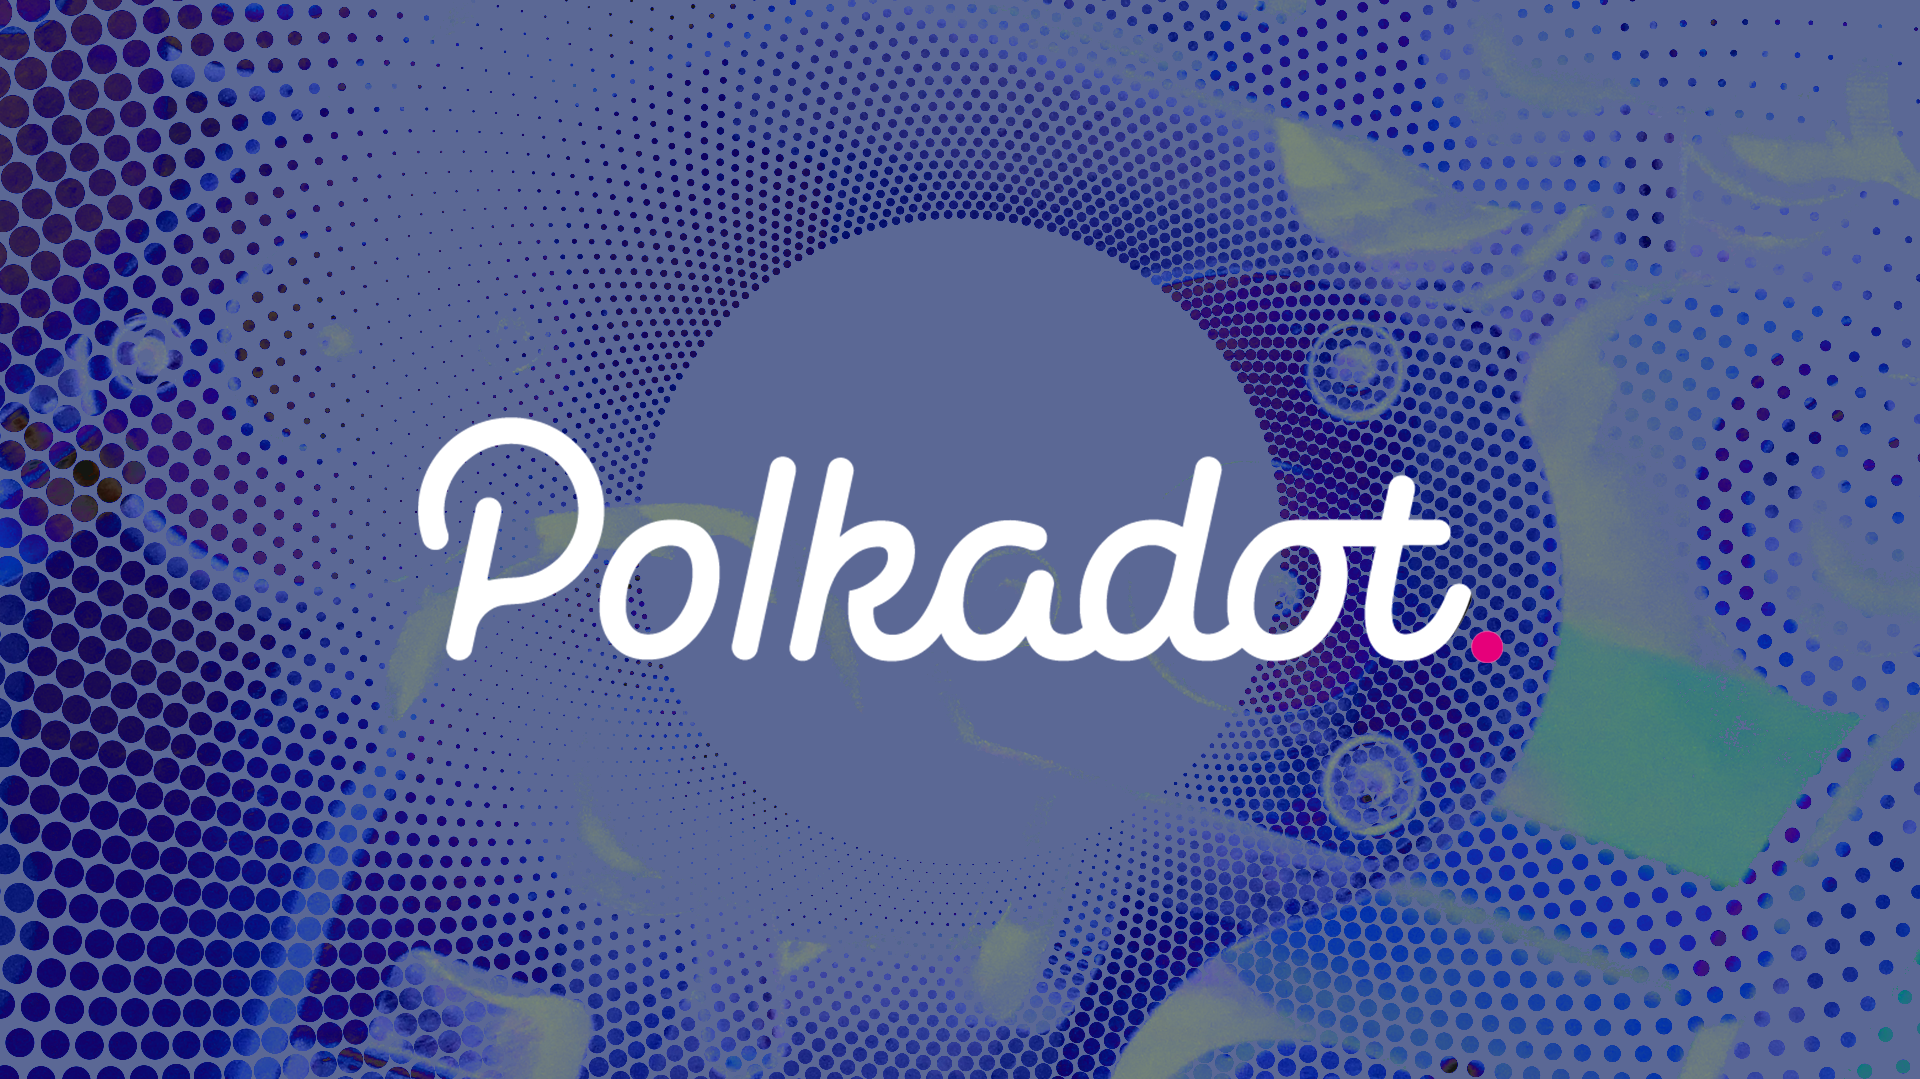 Polkadot is the most popular network for staking, nearly $3 billion worth of DOT tokens are at stake